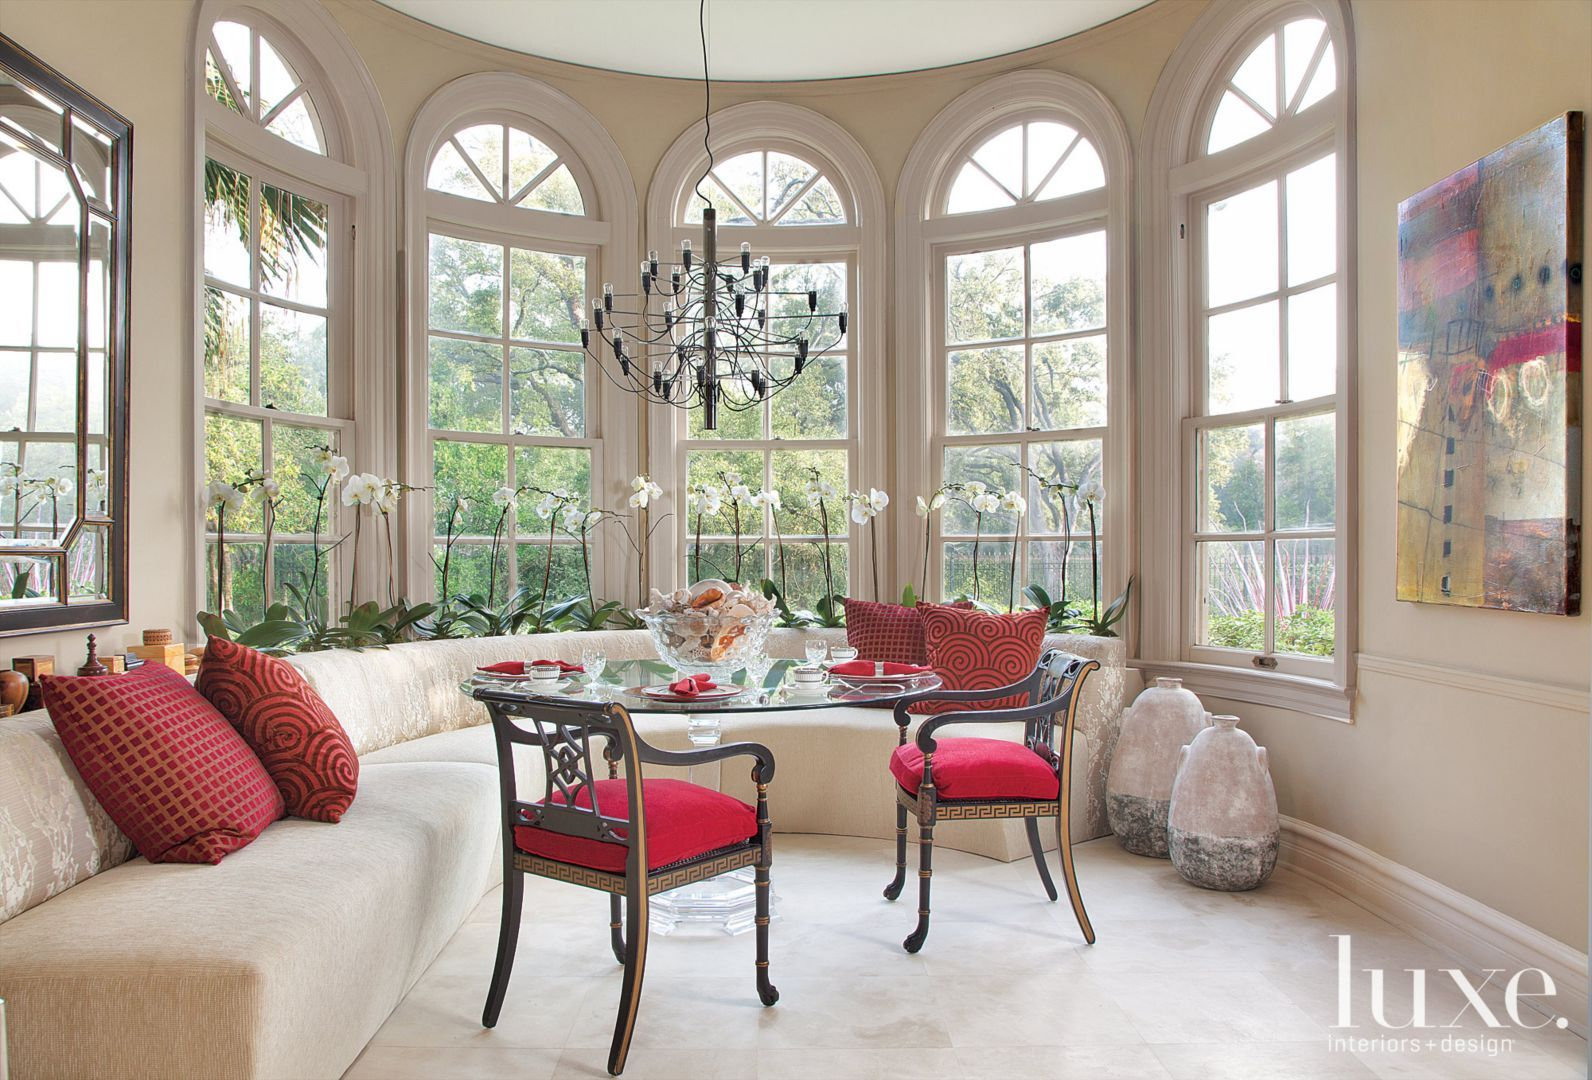 20 window designs for the best natural lighting interior